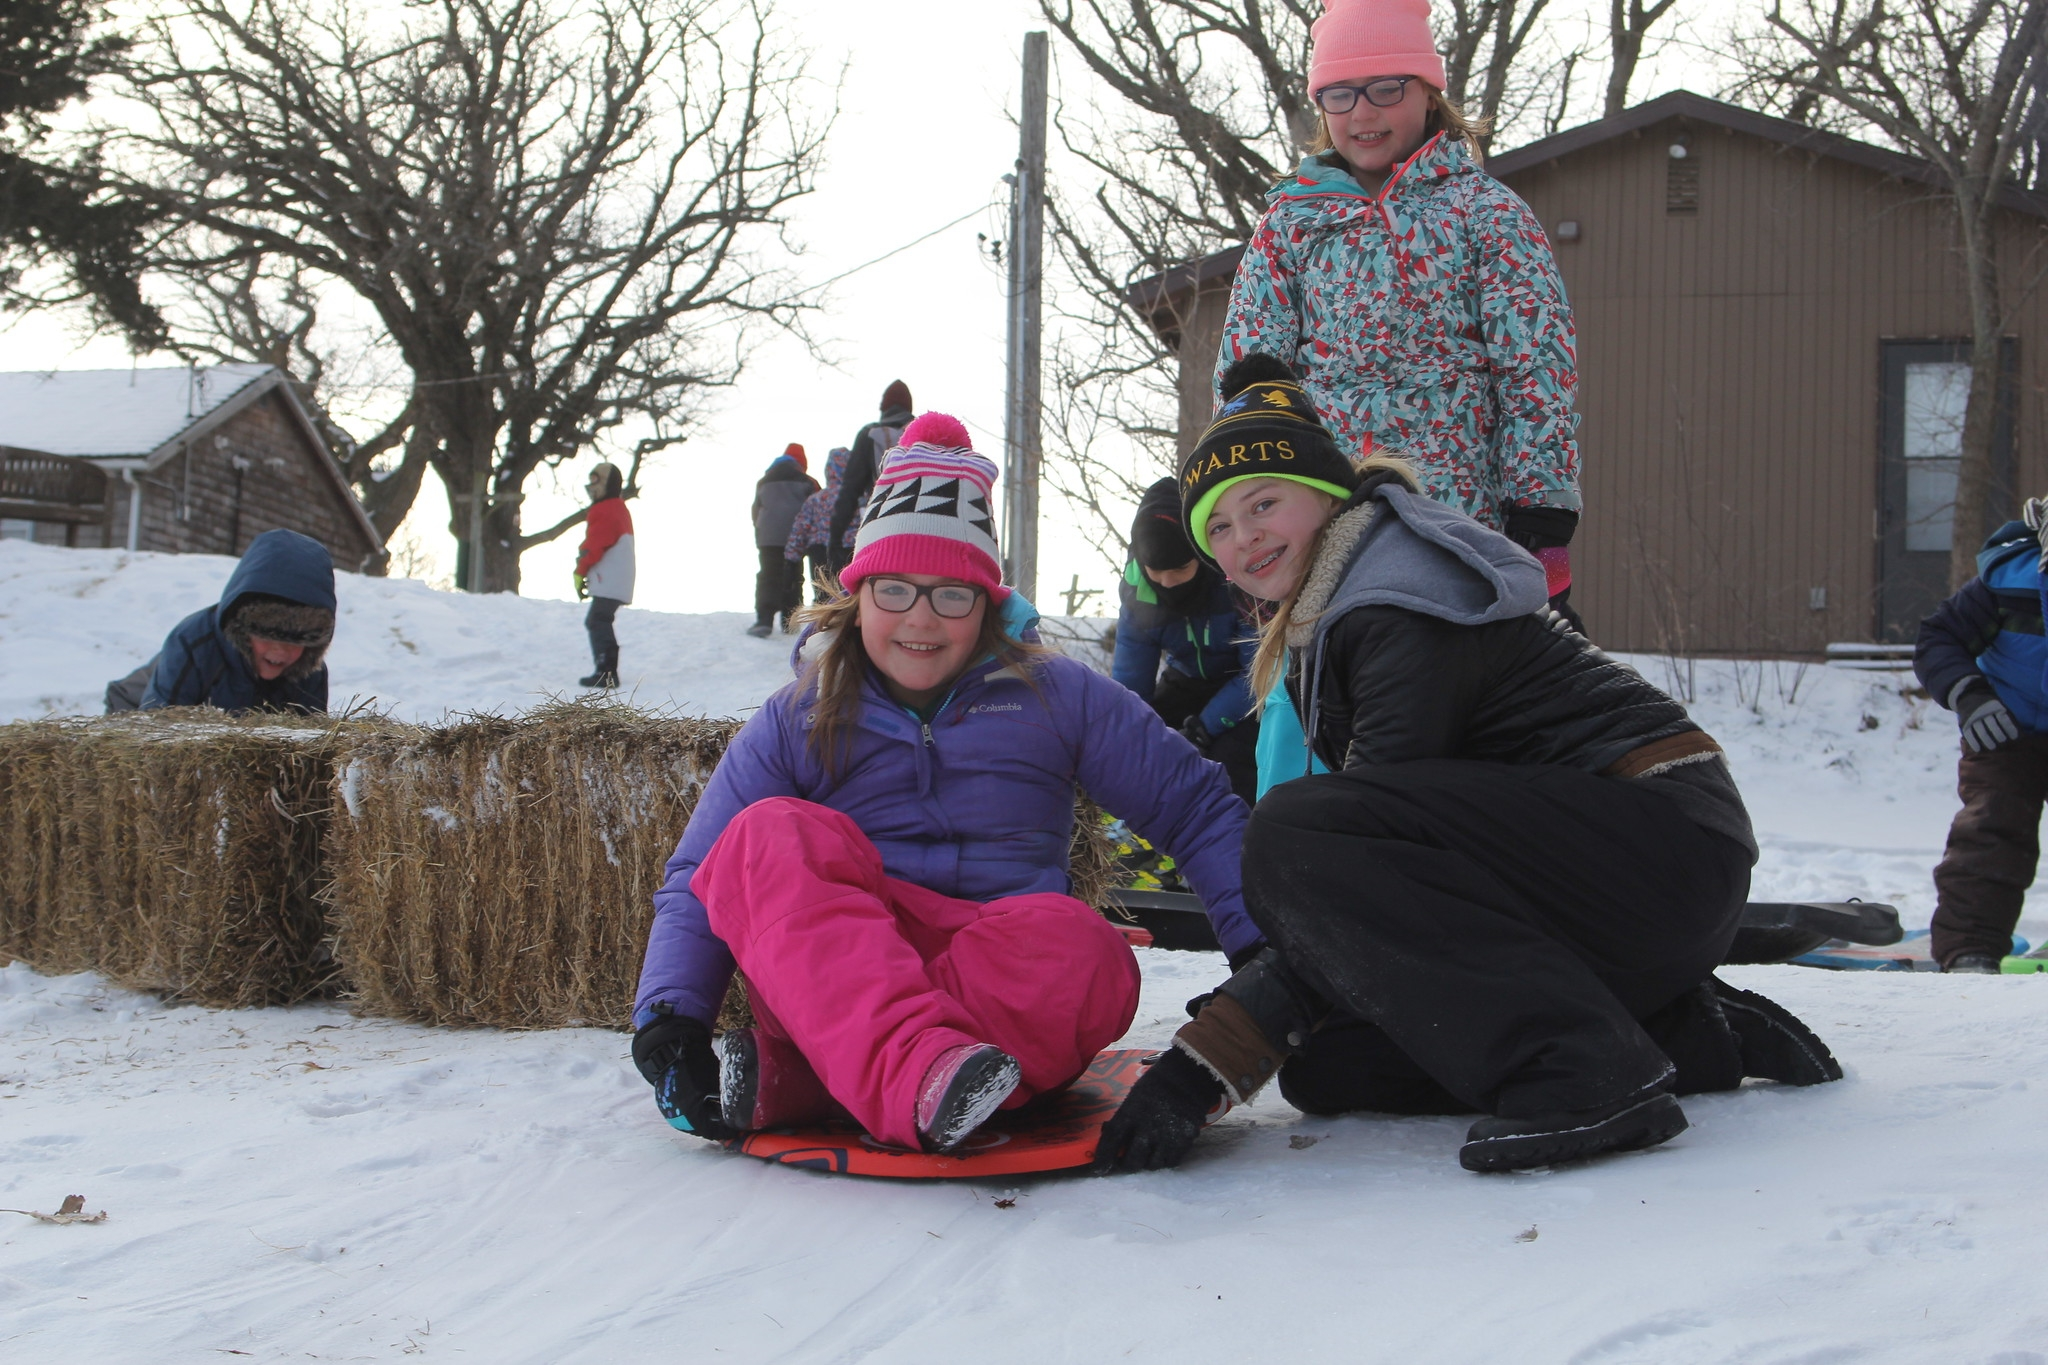 A camper poses on a disk sled just before taking off with assistance from an SK